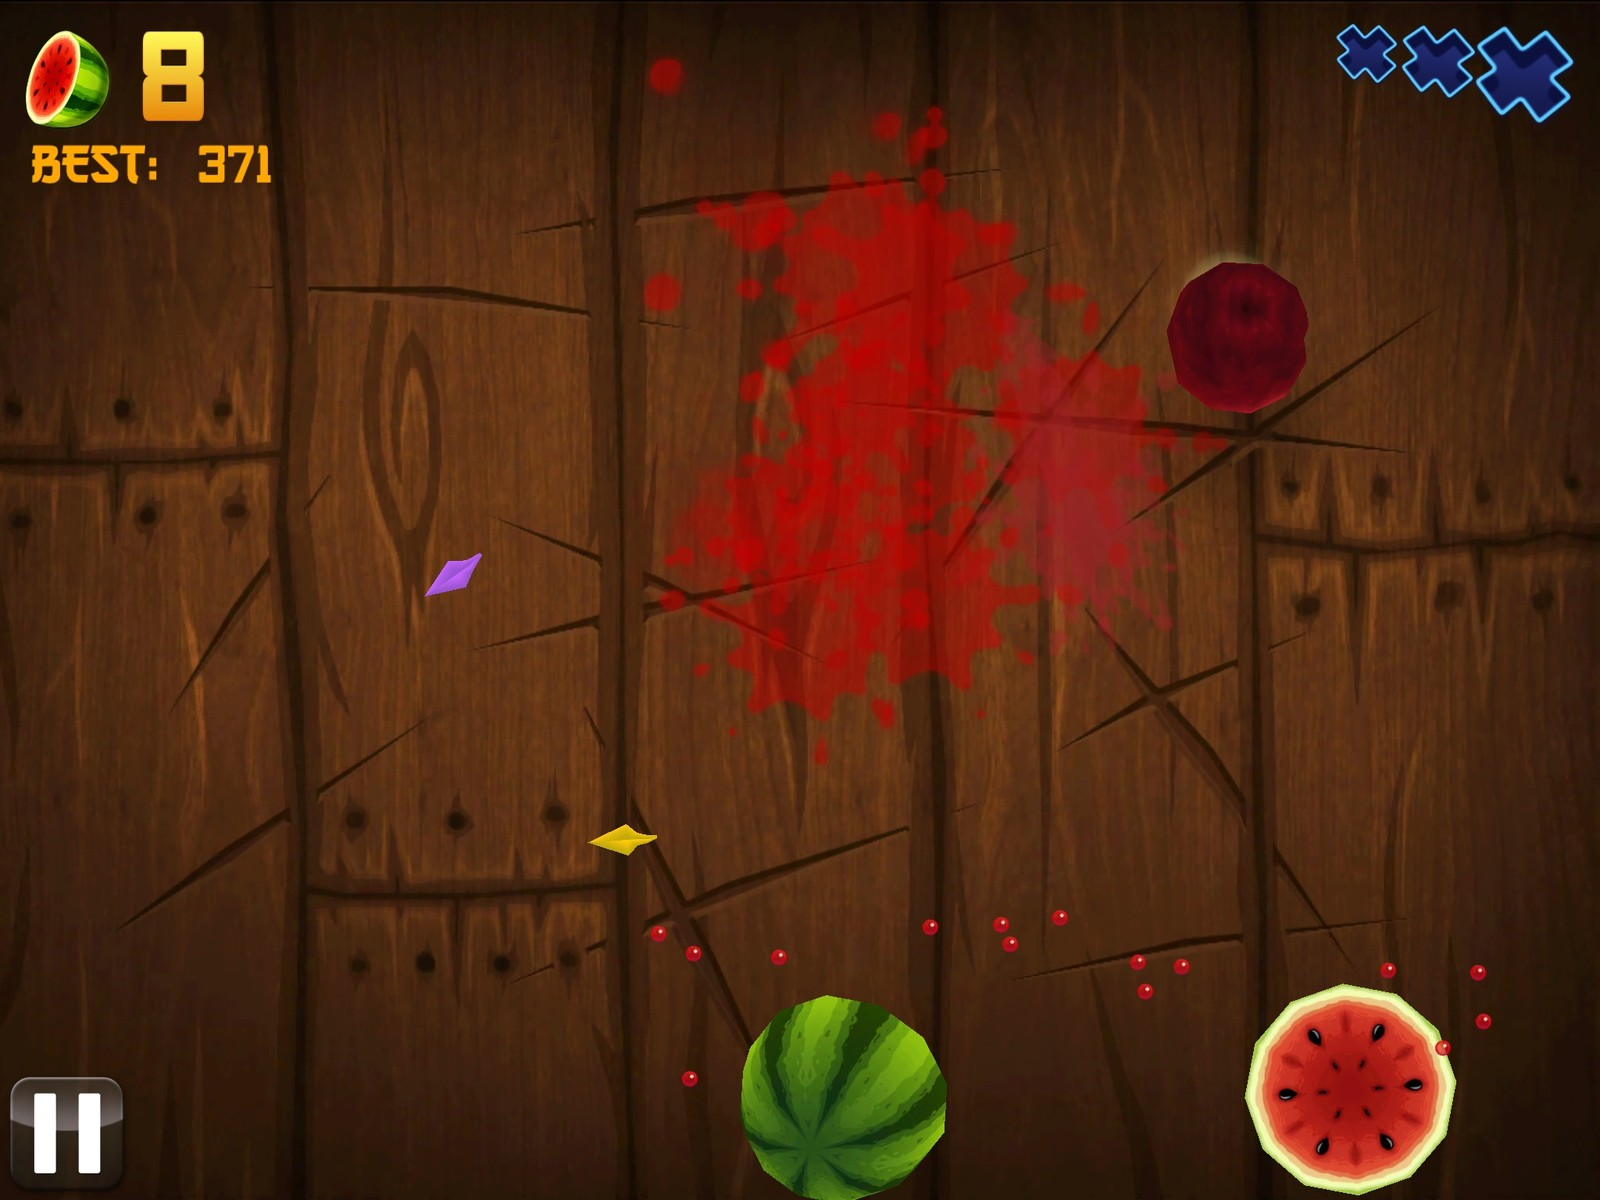 Fruit Ninja: Top 10 tips, hints, and cheats you need to know!